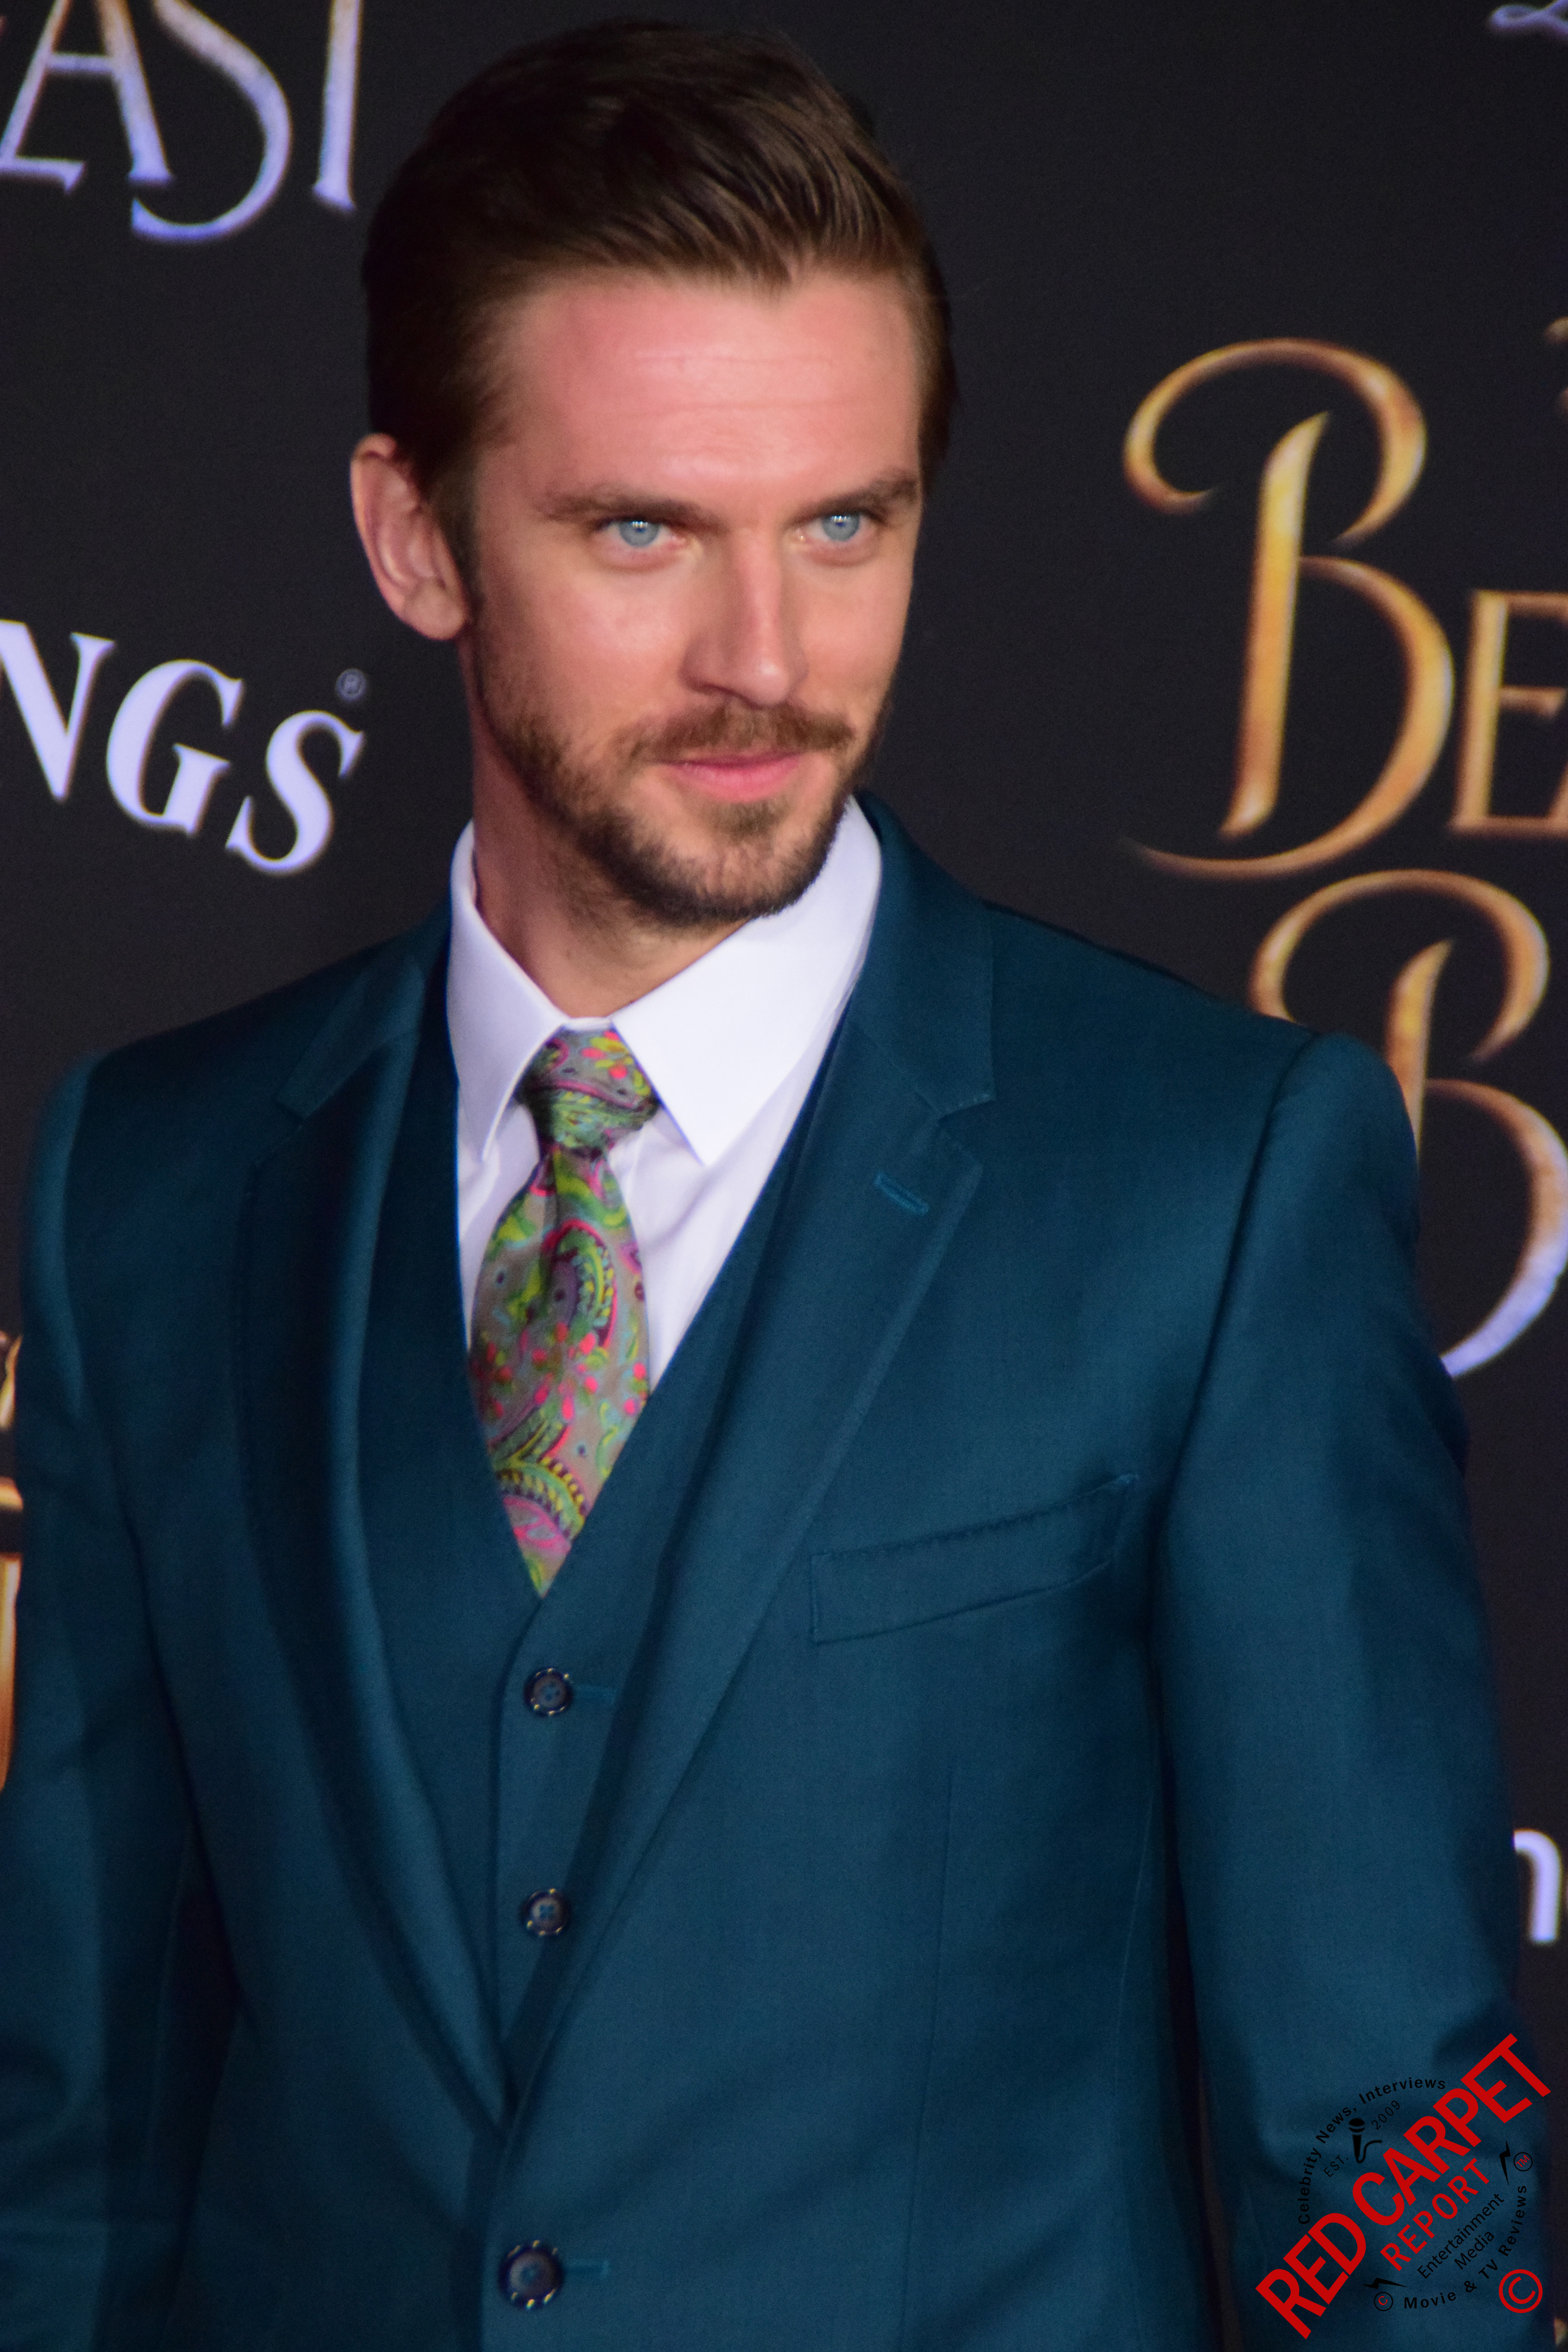 The 35-year old son of father (?) and mother(?) Dan Stevens in 2018 photo. Dan Stevens earned a  million dollar salary - leaving the net worth at 3 million in 2018